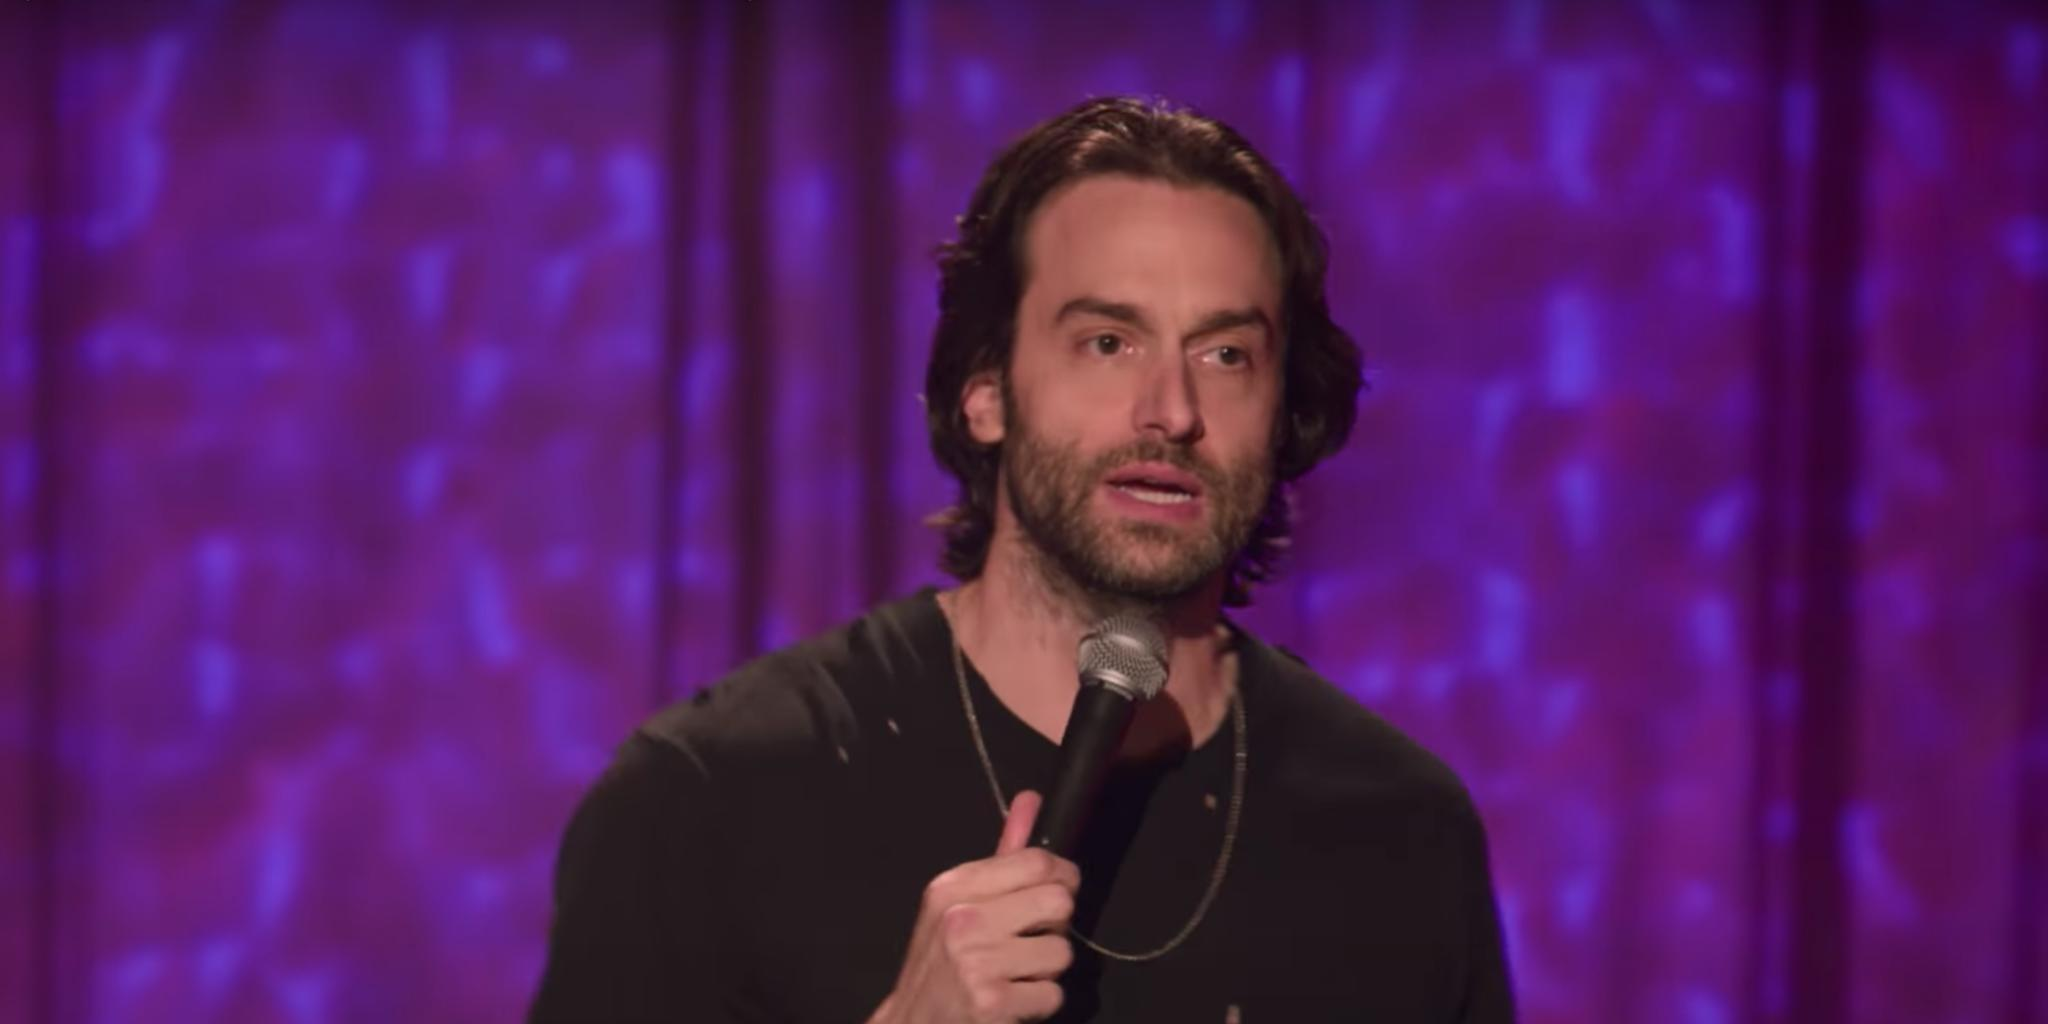 Chris D'elia Returns In Youtube Video After Sexual Harassment Allegations